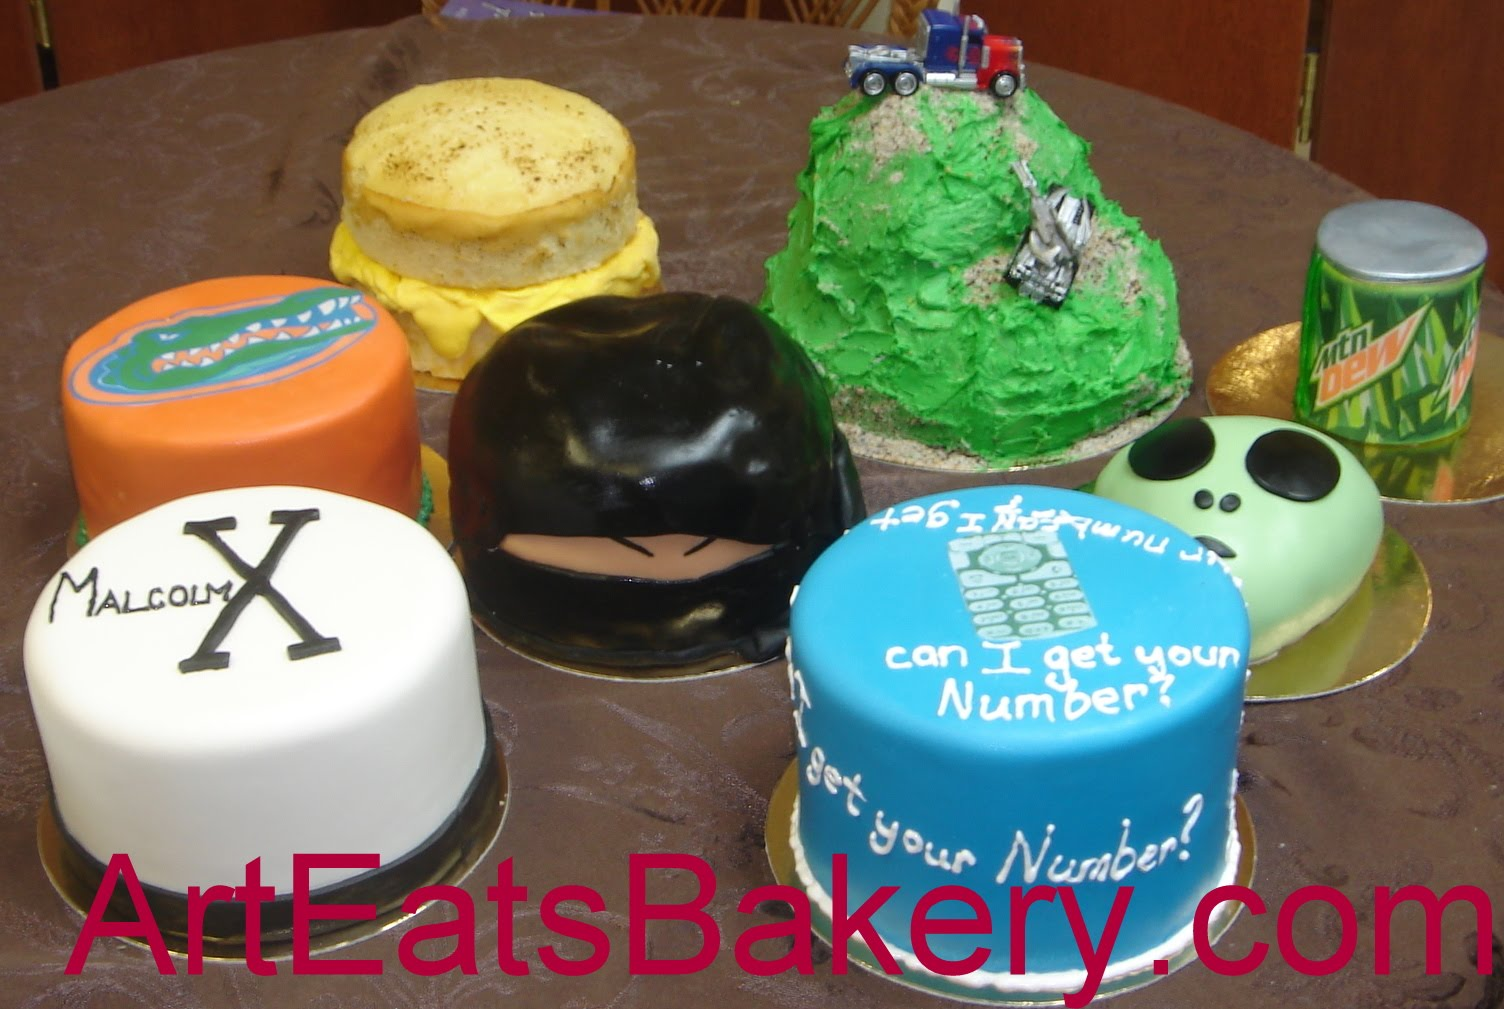 Magnificent Eight Tiny Specialty Cakes For A Special Guy Arteatsbakery Funny Birthday Cards Online Inifodamsfinfo